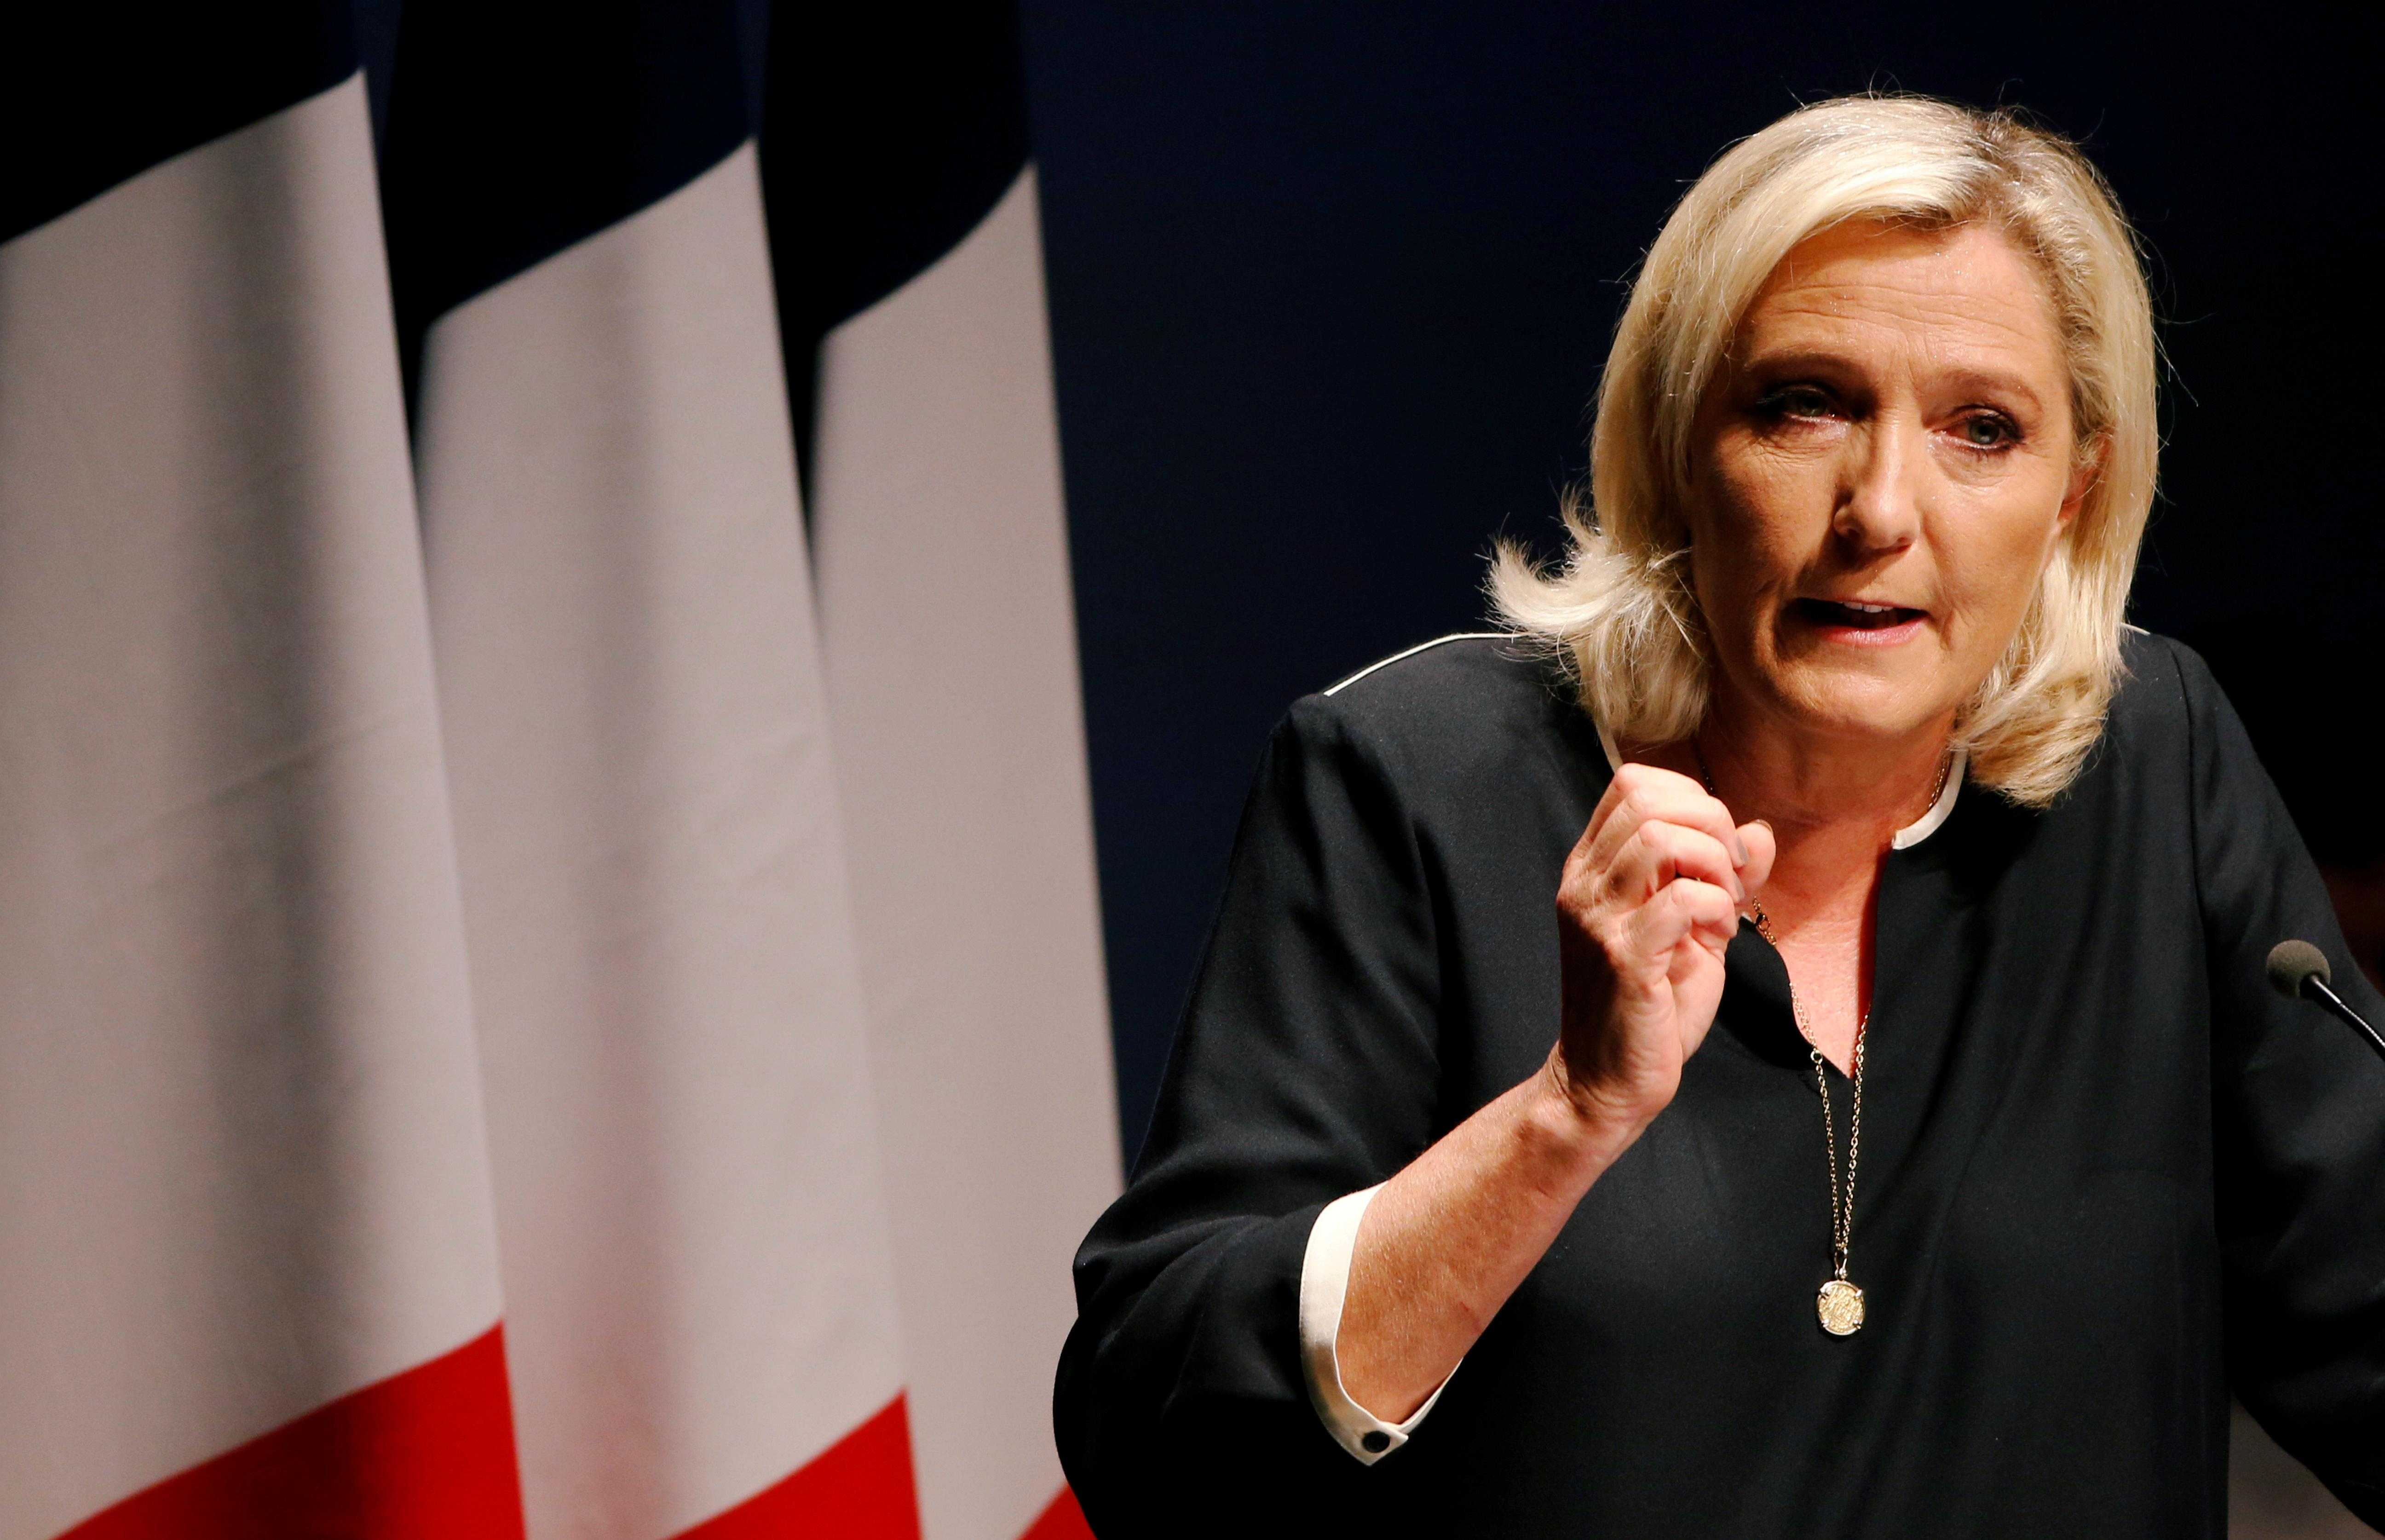 France's Le Pen hails EU 'way of life' job as victory on path to...